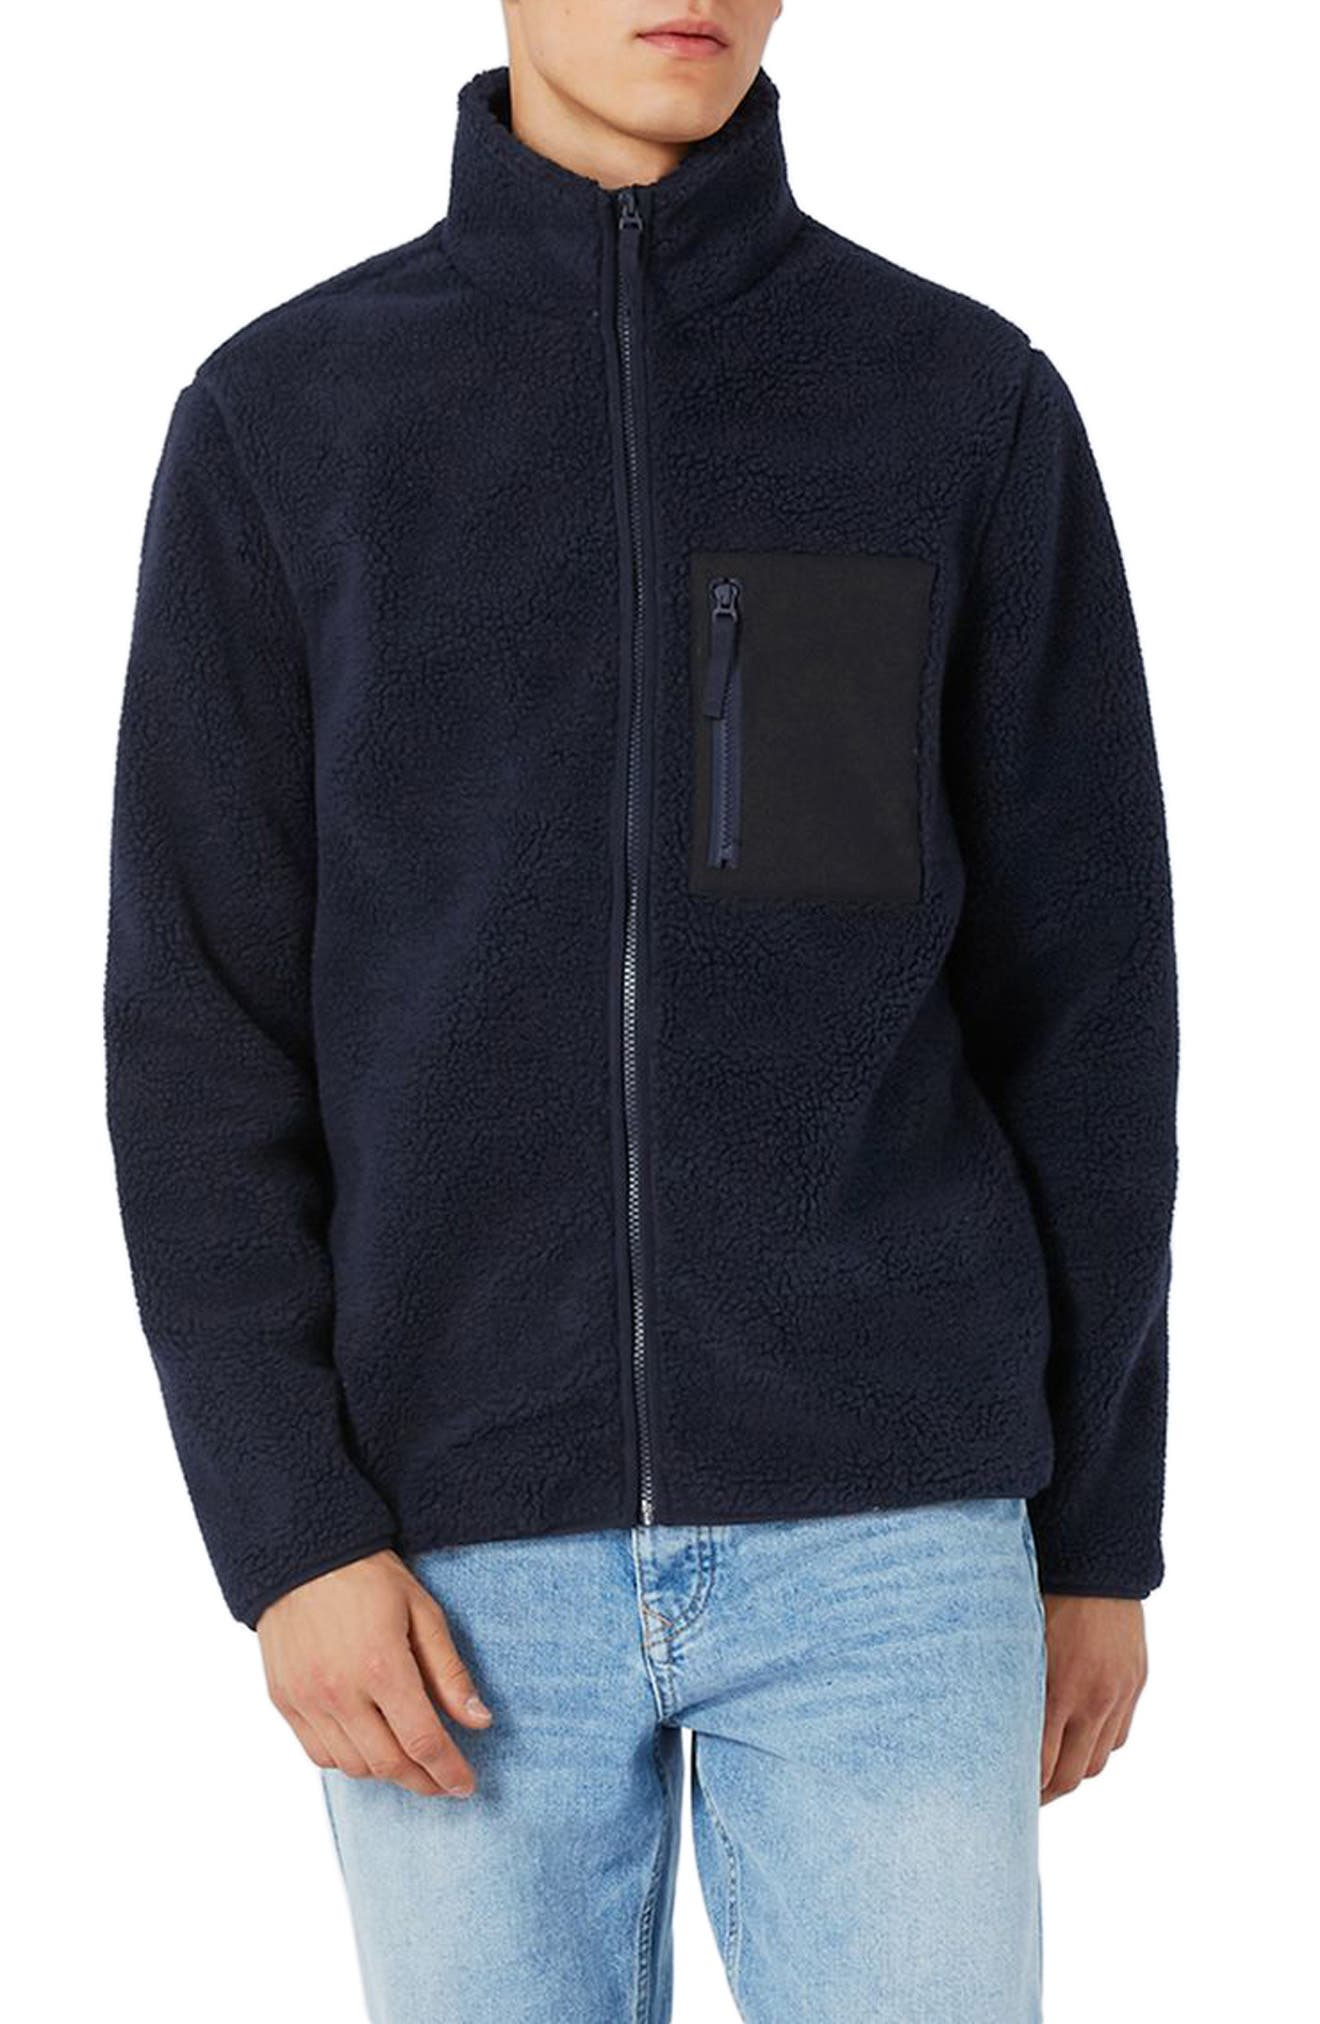 Topman Textured Borg Fleece Jacket